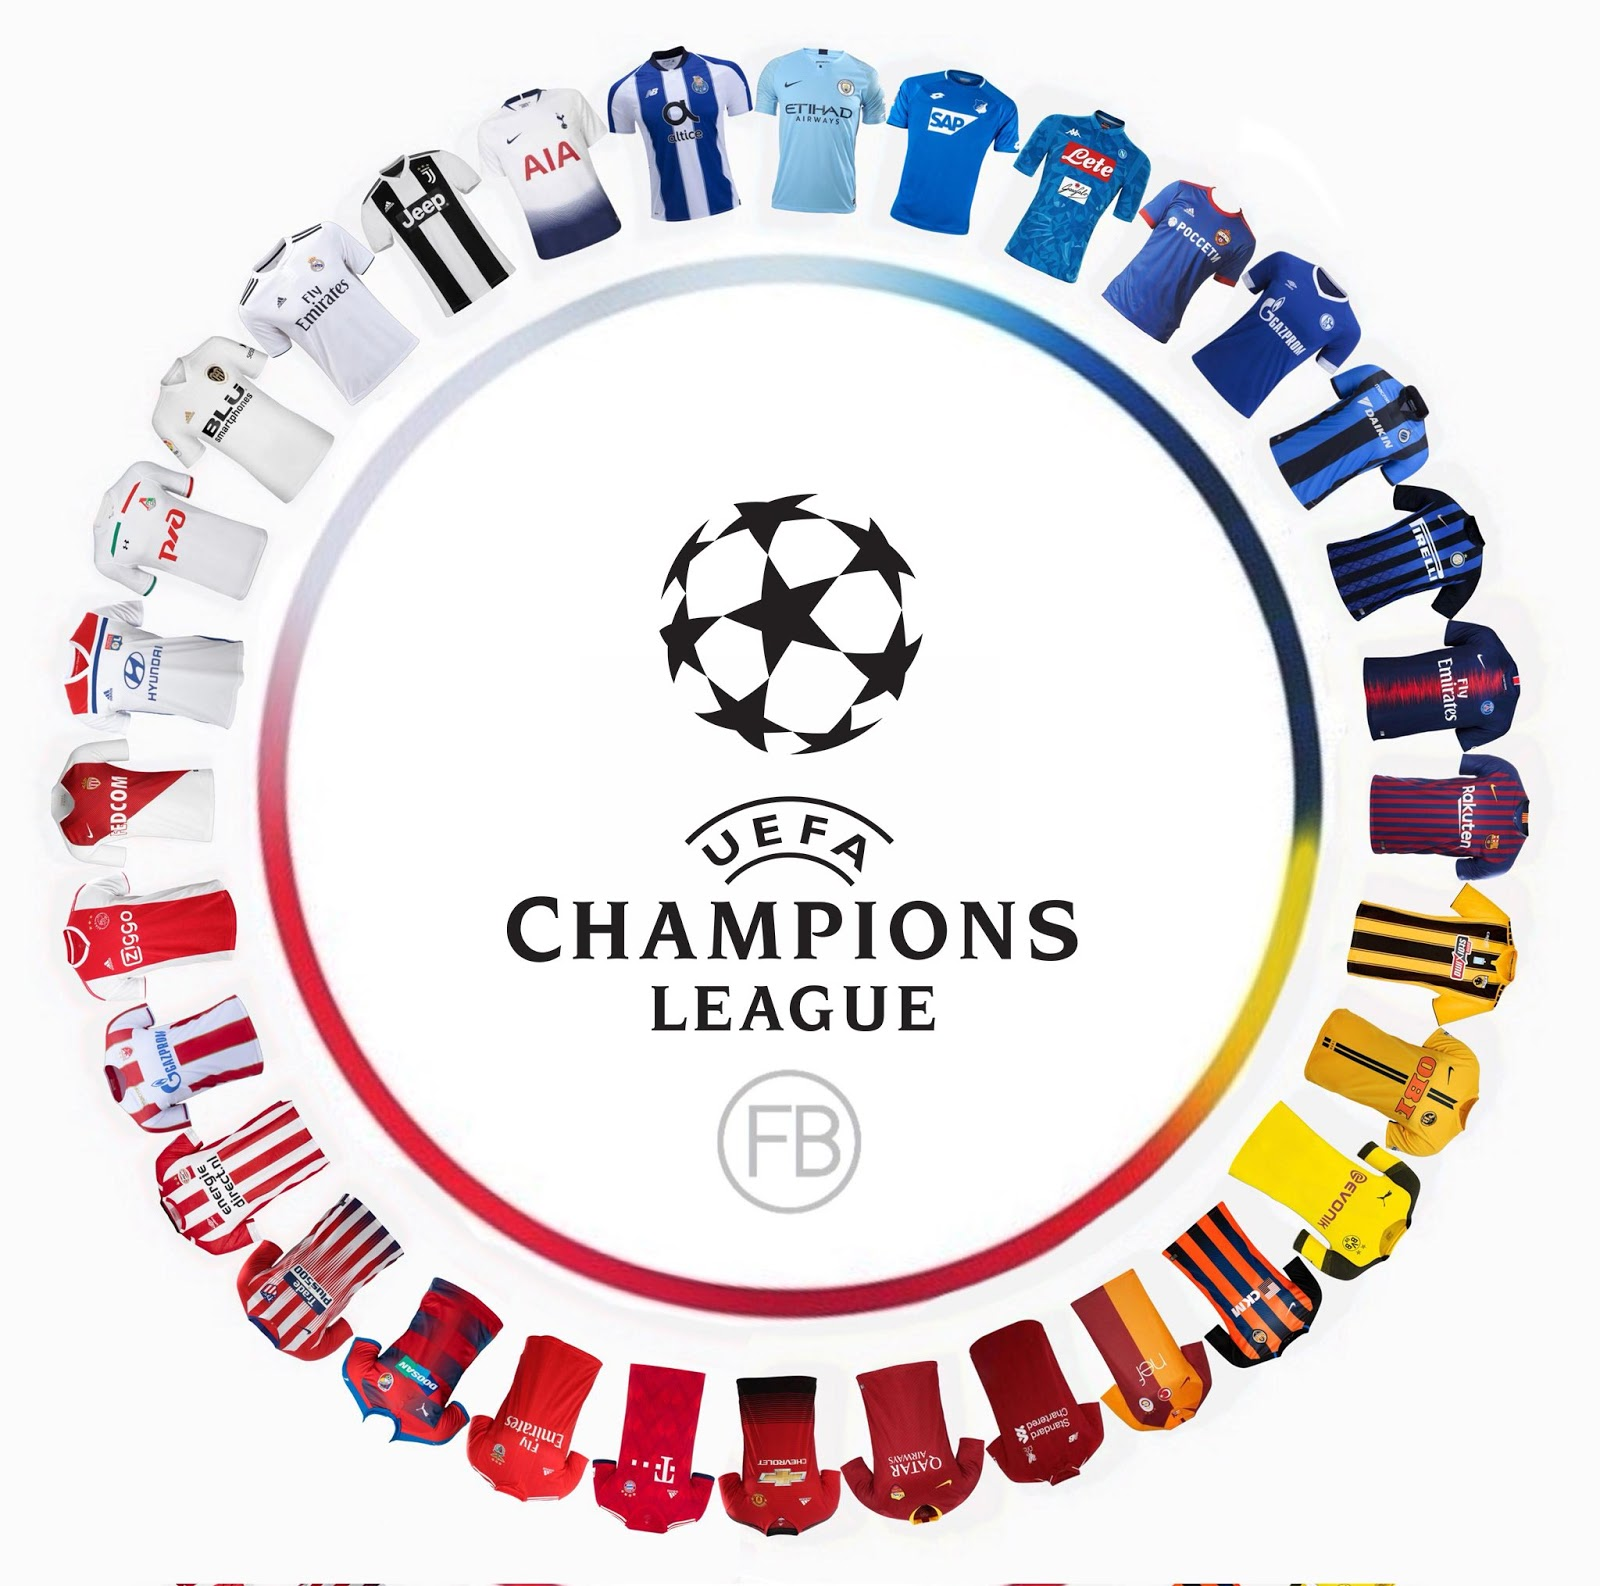 Champions League Group Stage 2020: OVERVIEW: All 32 Teams' 18-19 Champions League Kits